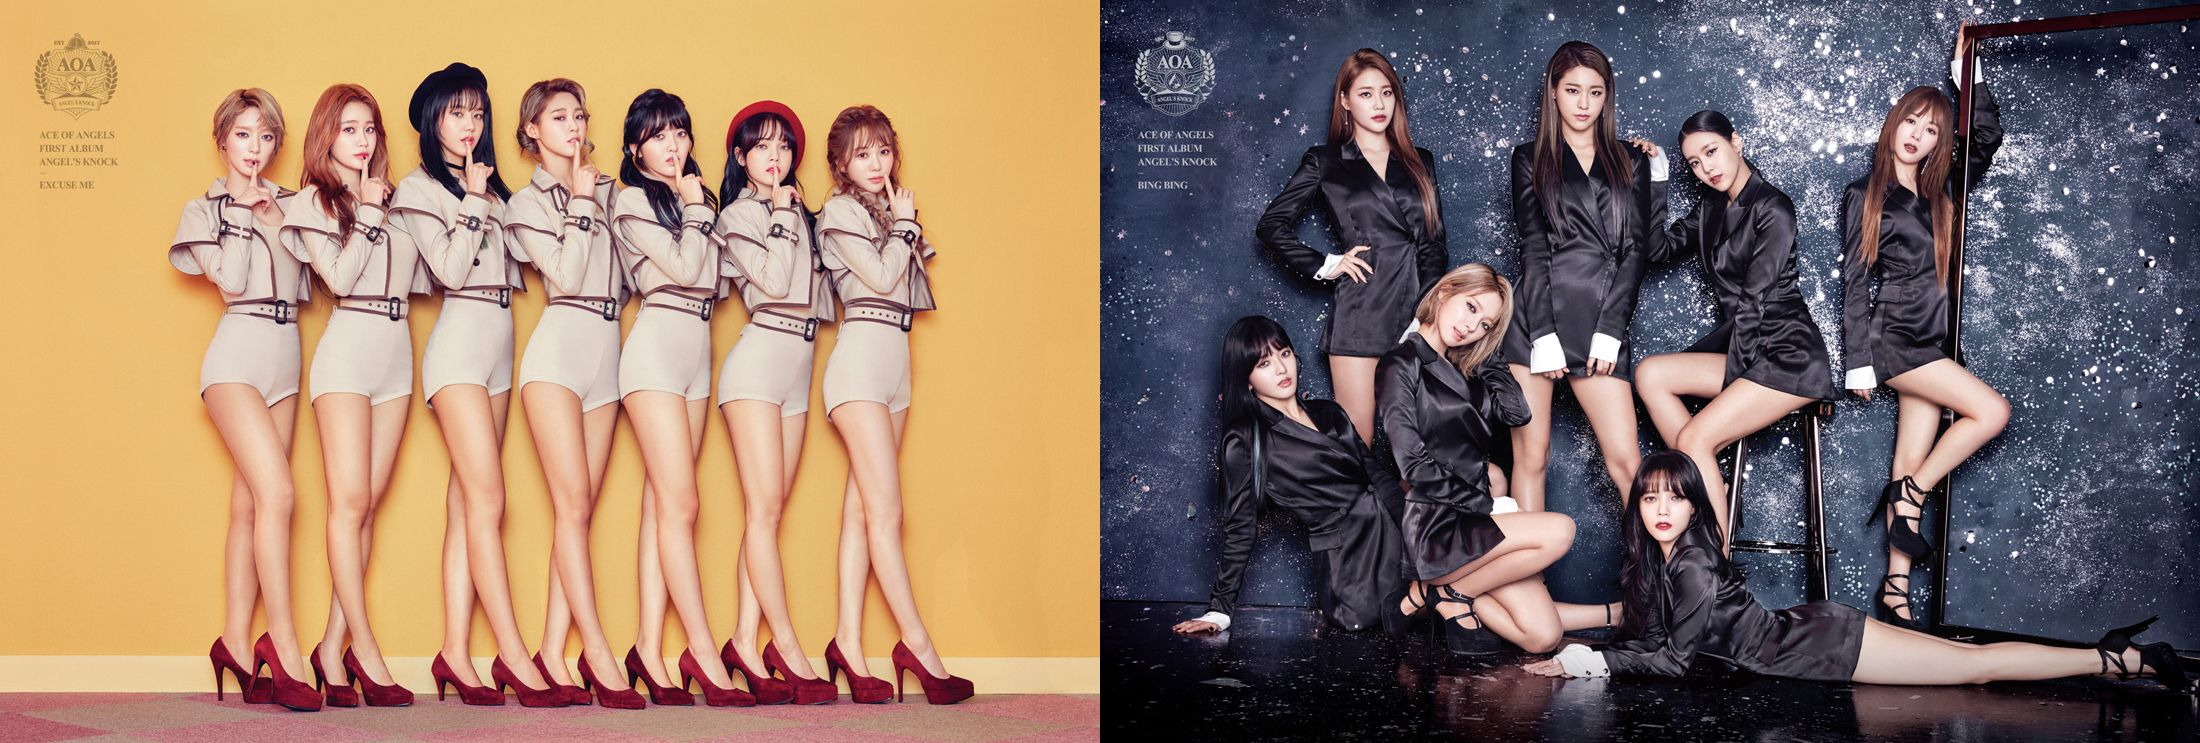 "AOA Unveils First Glimpse At Double Title Tracks ""Excuse Me"" And ""Bing Bing"""